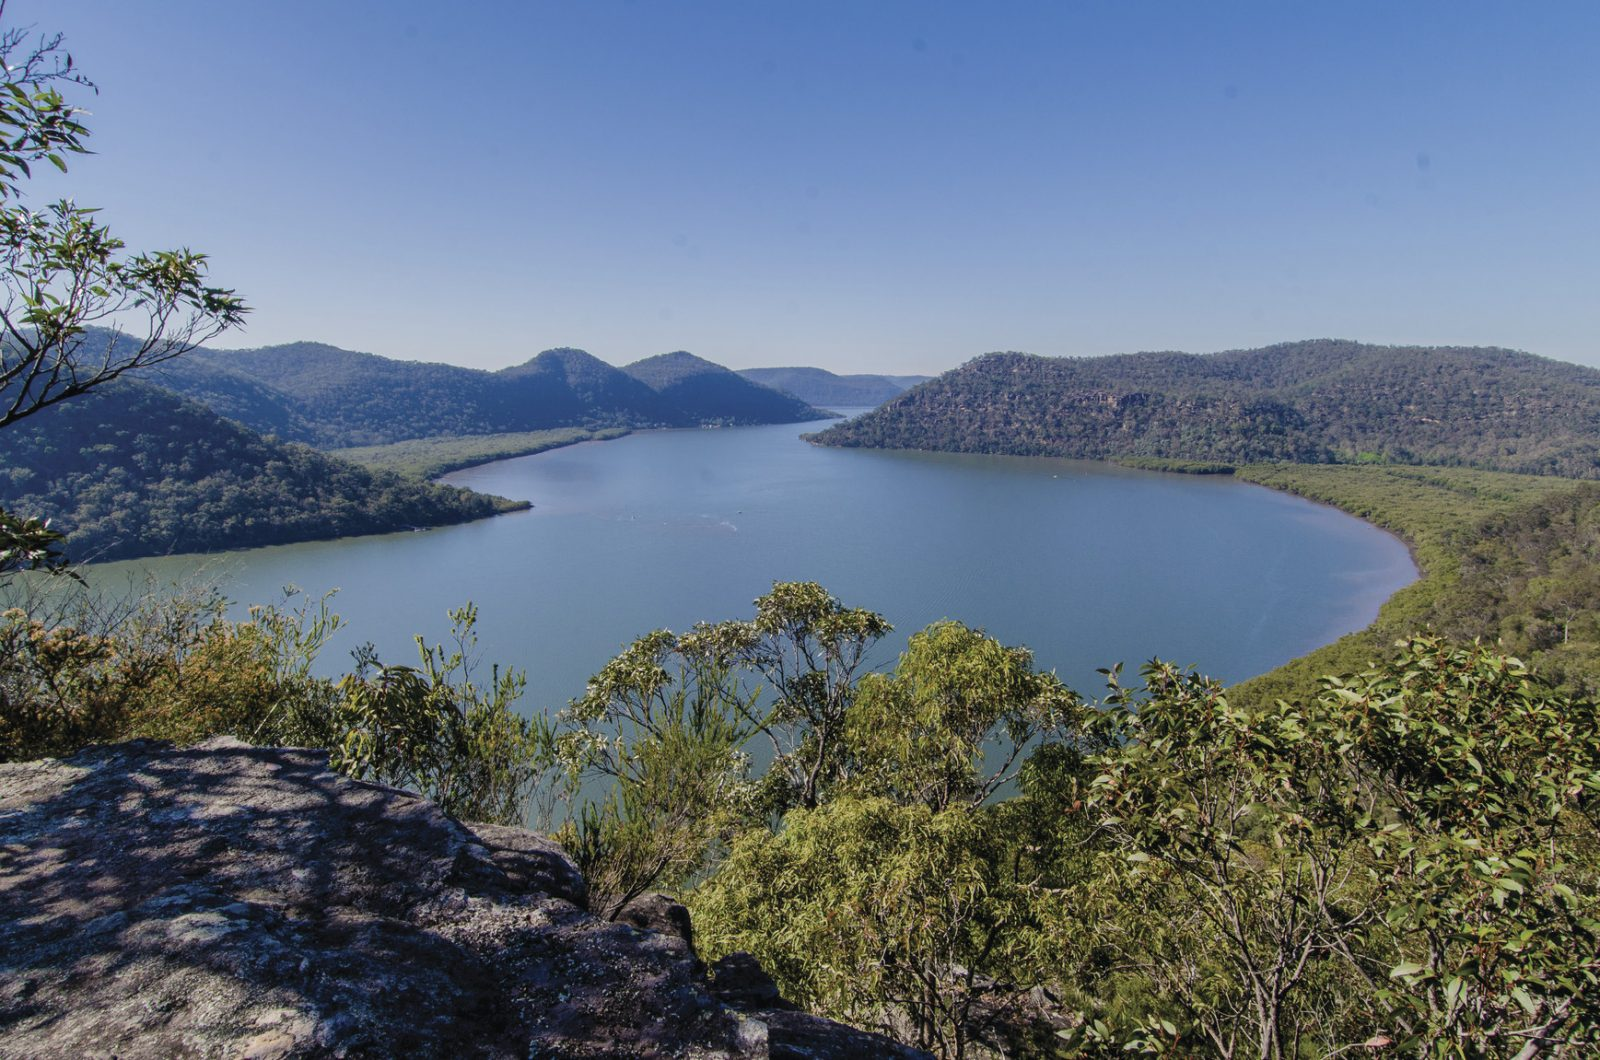 View down to the winding Hawkesbury River from Marramarra National Park. Photo: John Spencer/DPIE